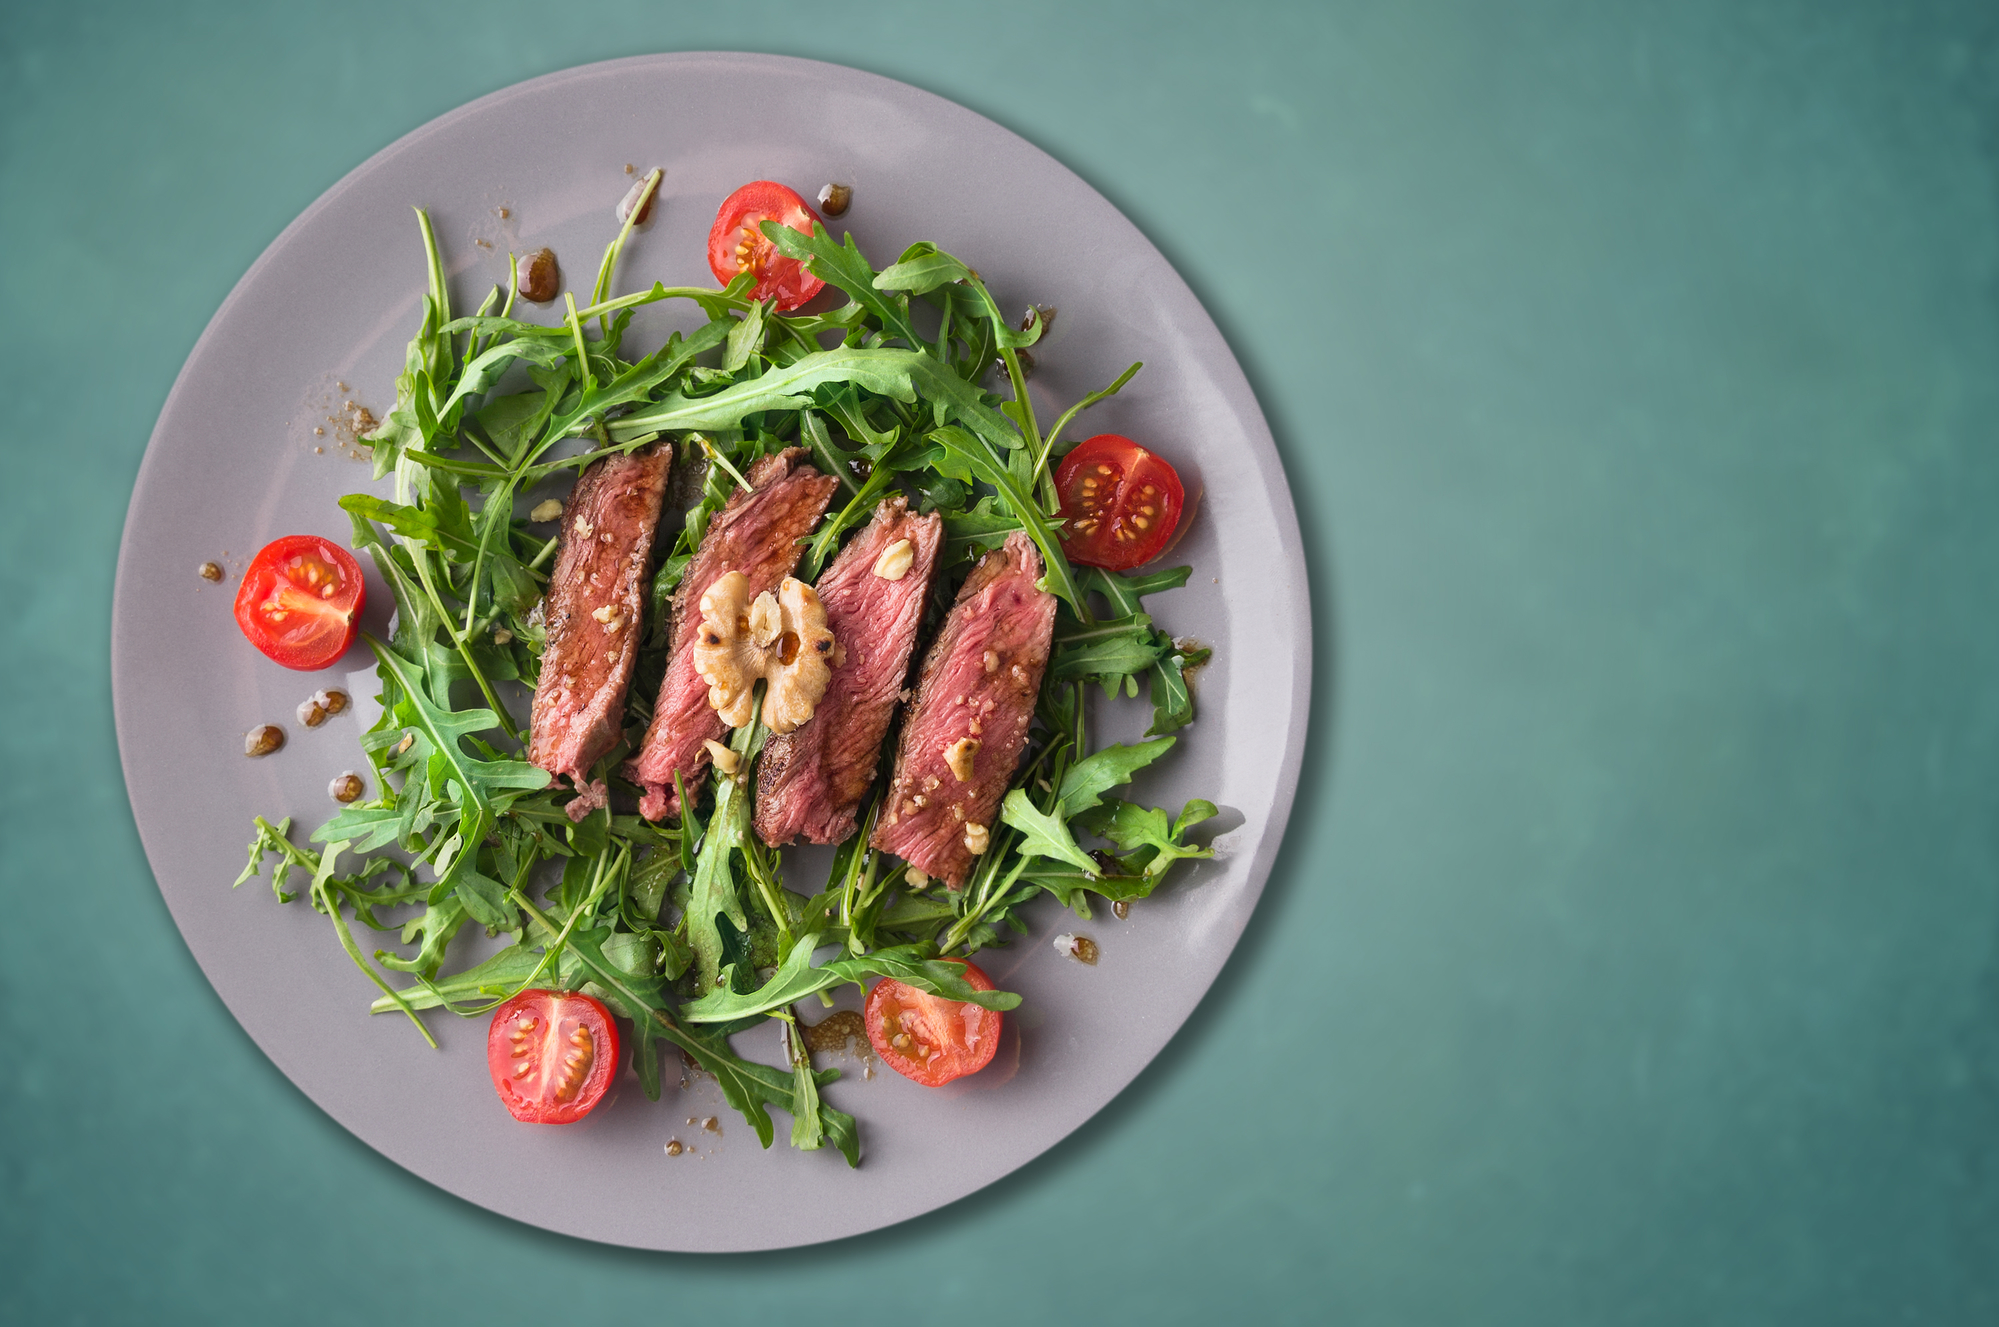 beef steak medium, Ruccola salad with tomatoes and walnuts,gray plate, blue background,copy space